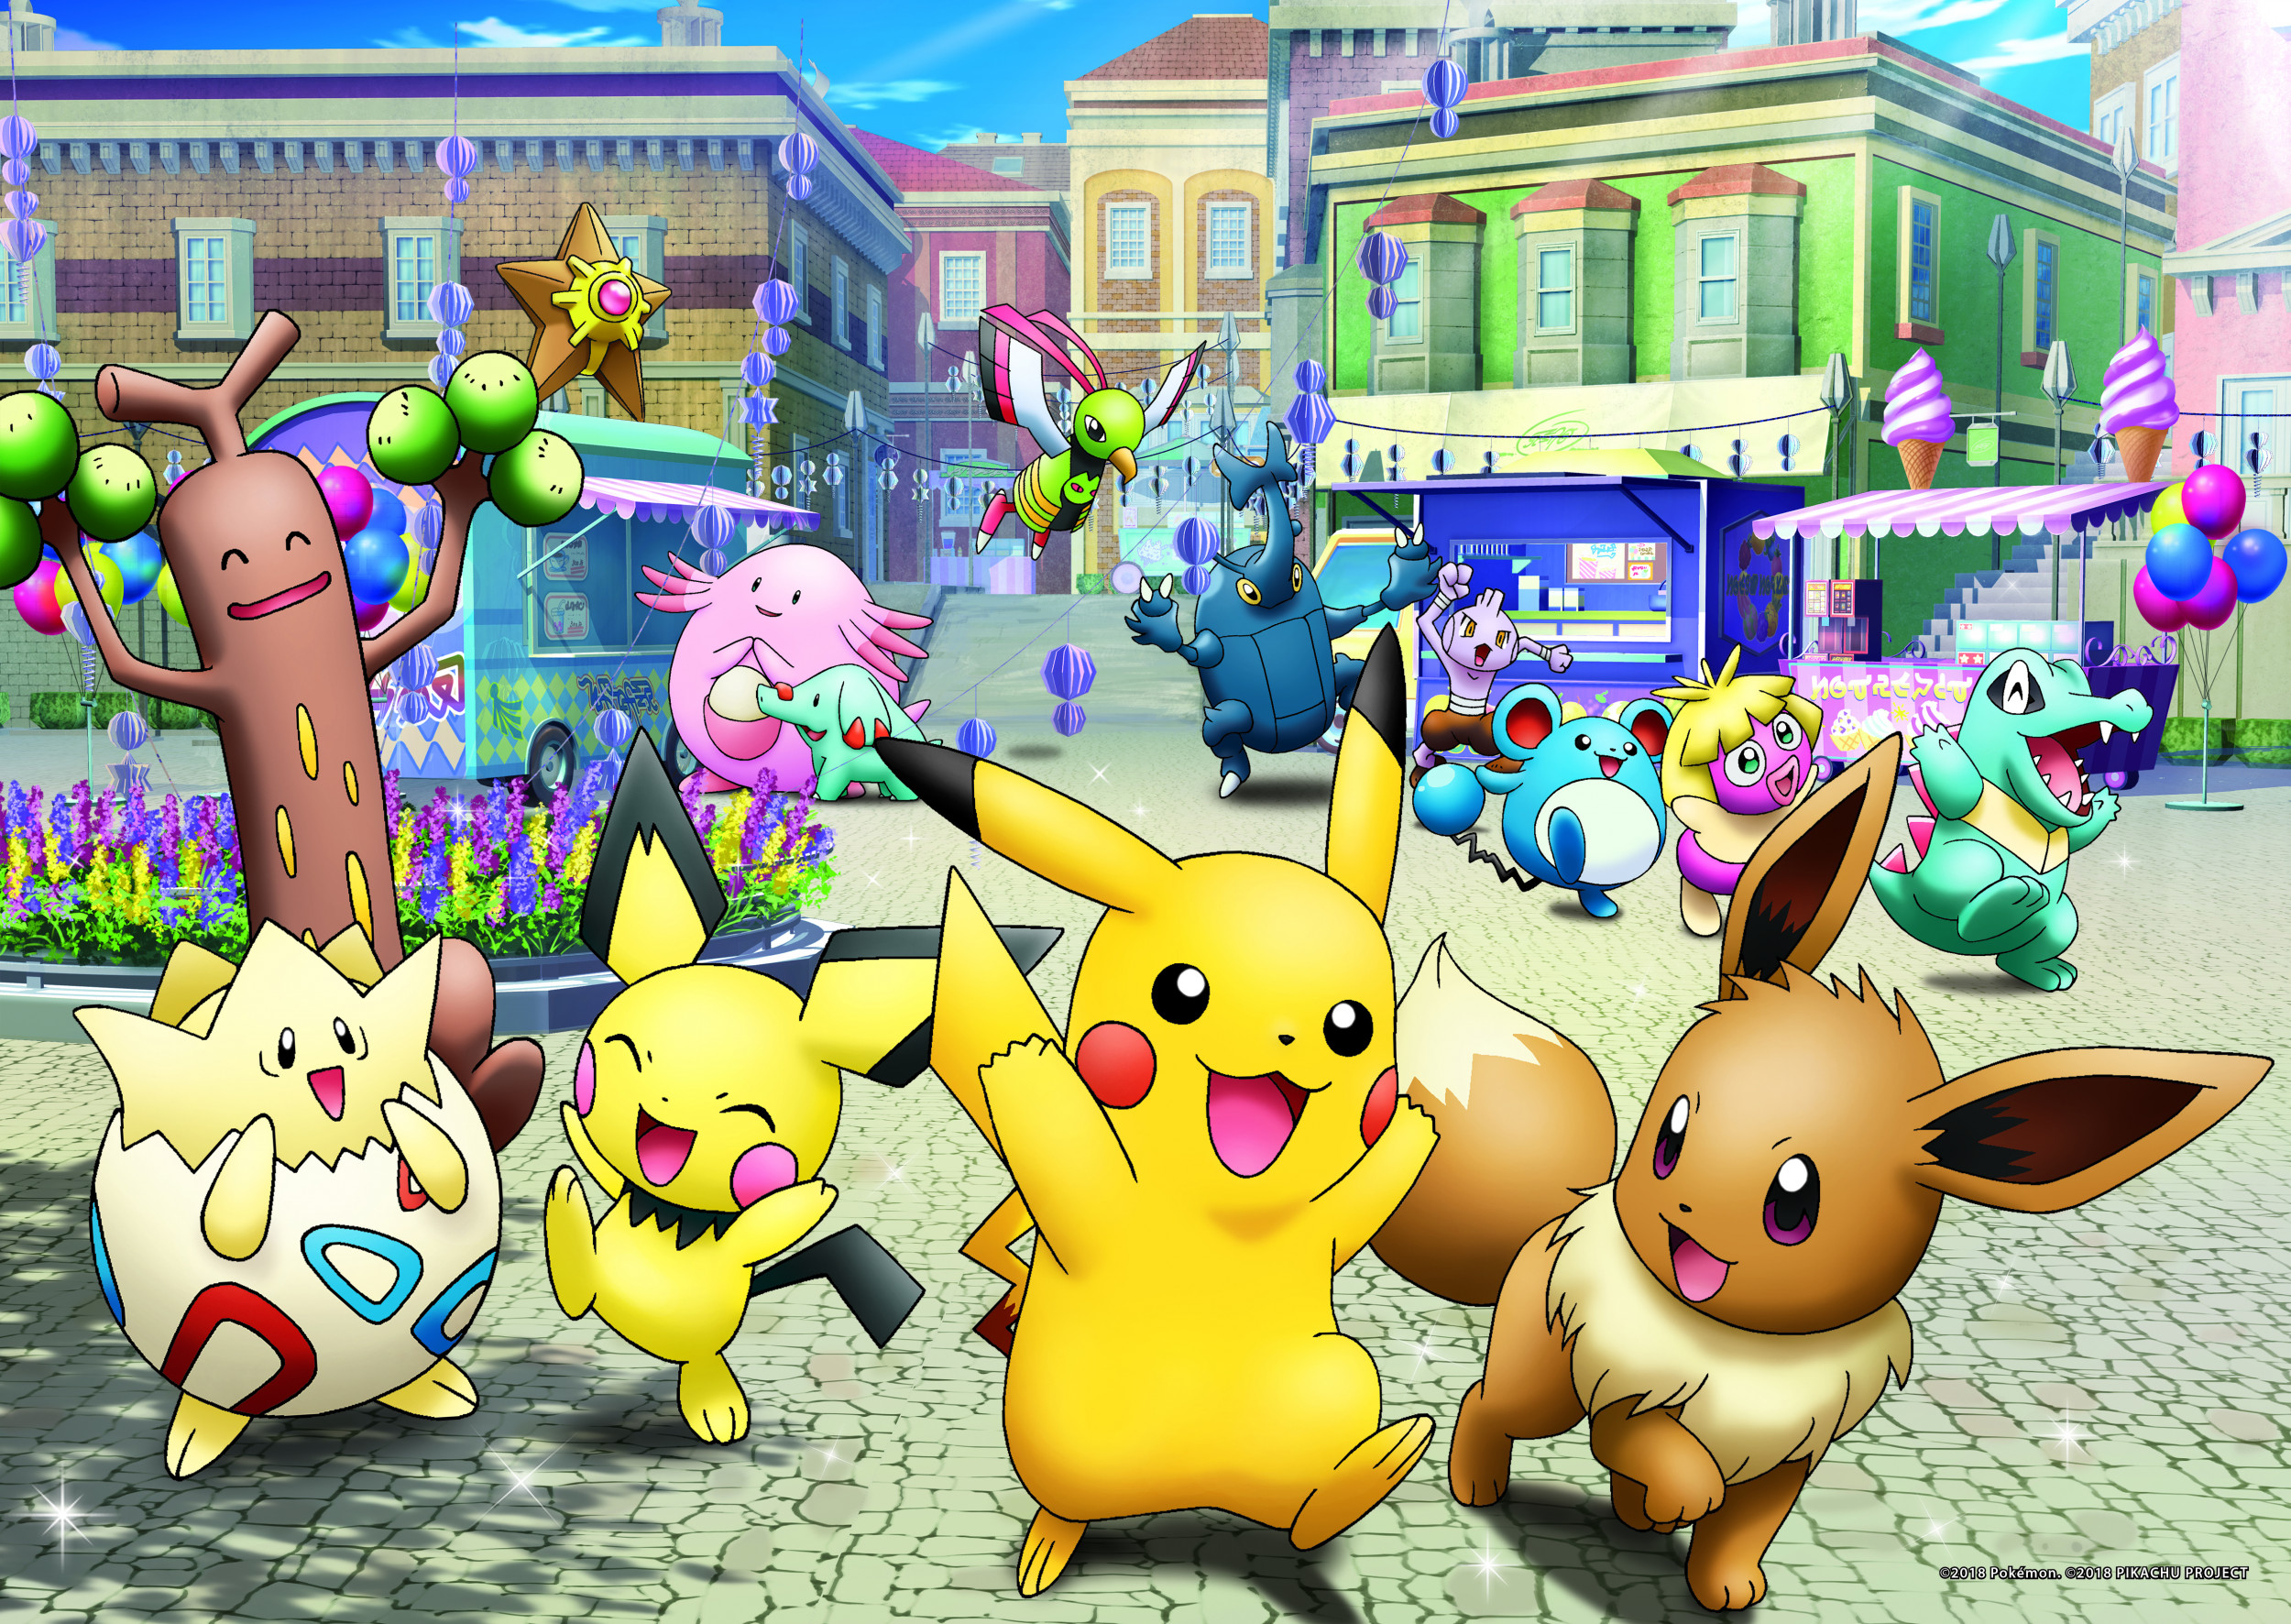 What We Know so Far about the Pokémon Live-action Series